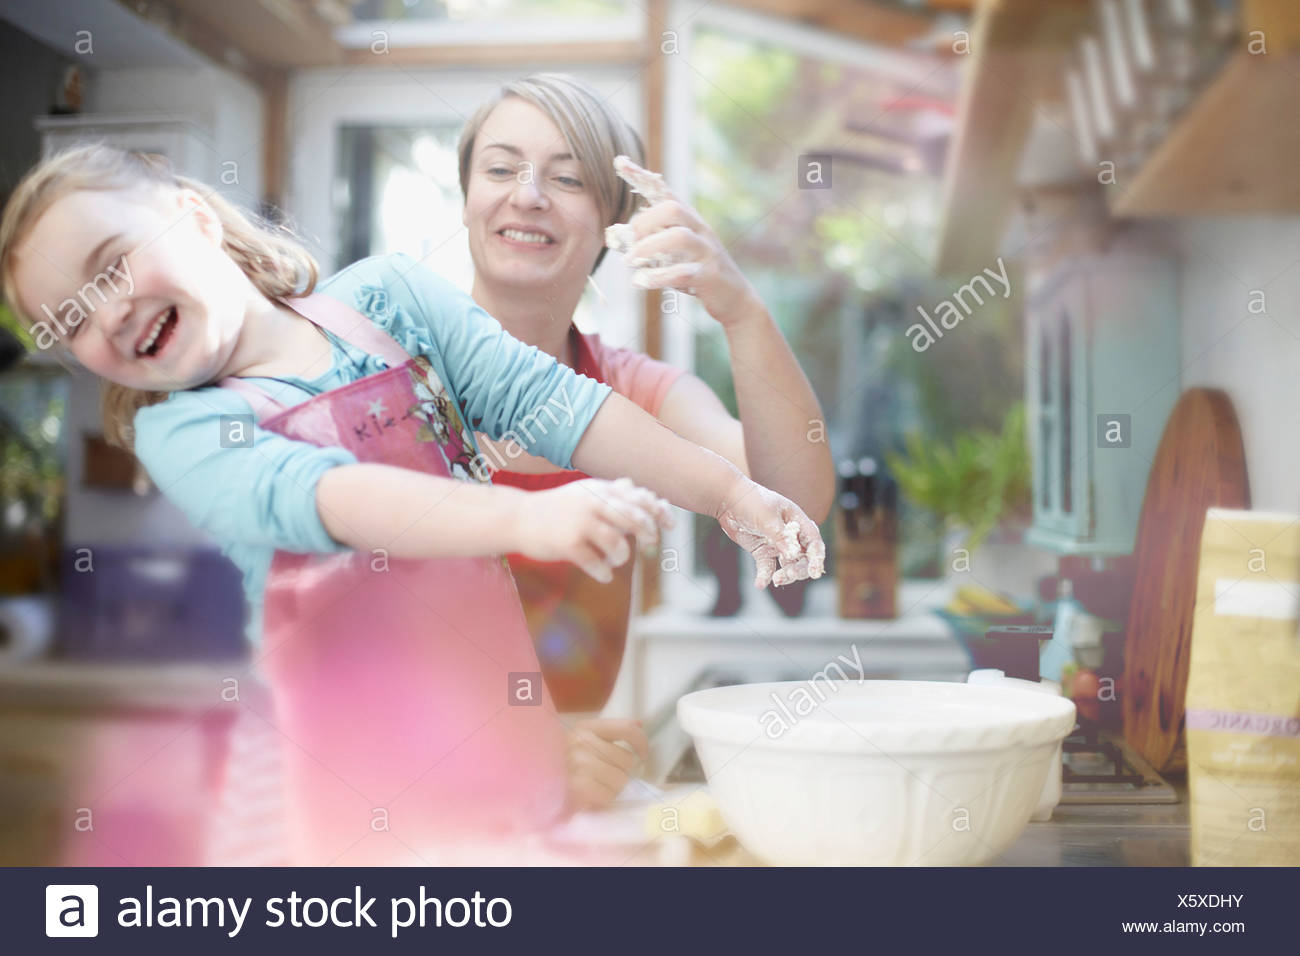 Mother and daughter baking together - Stock Image